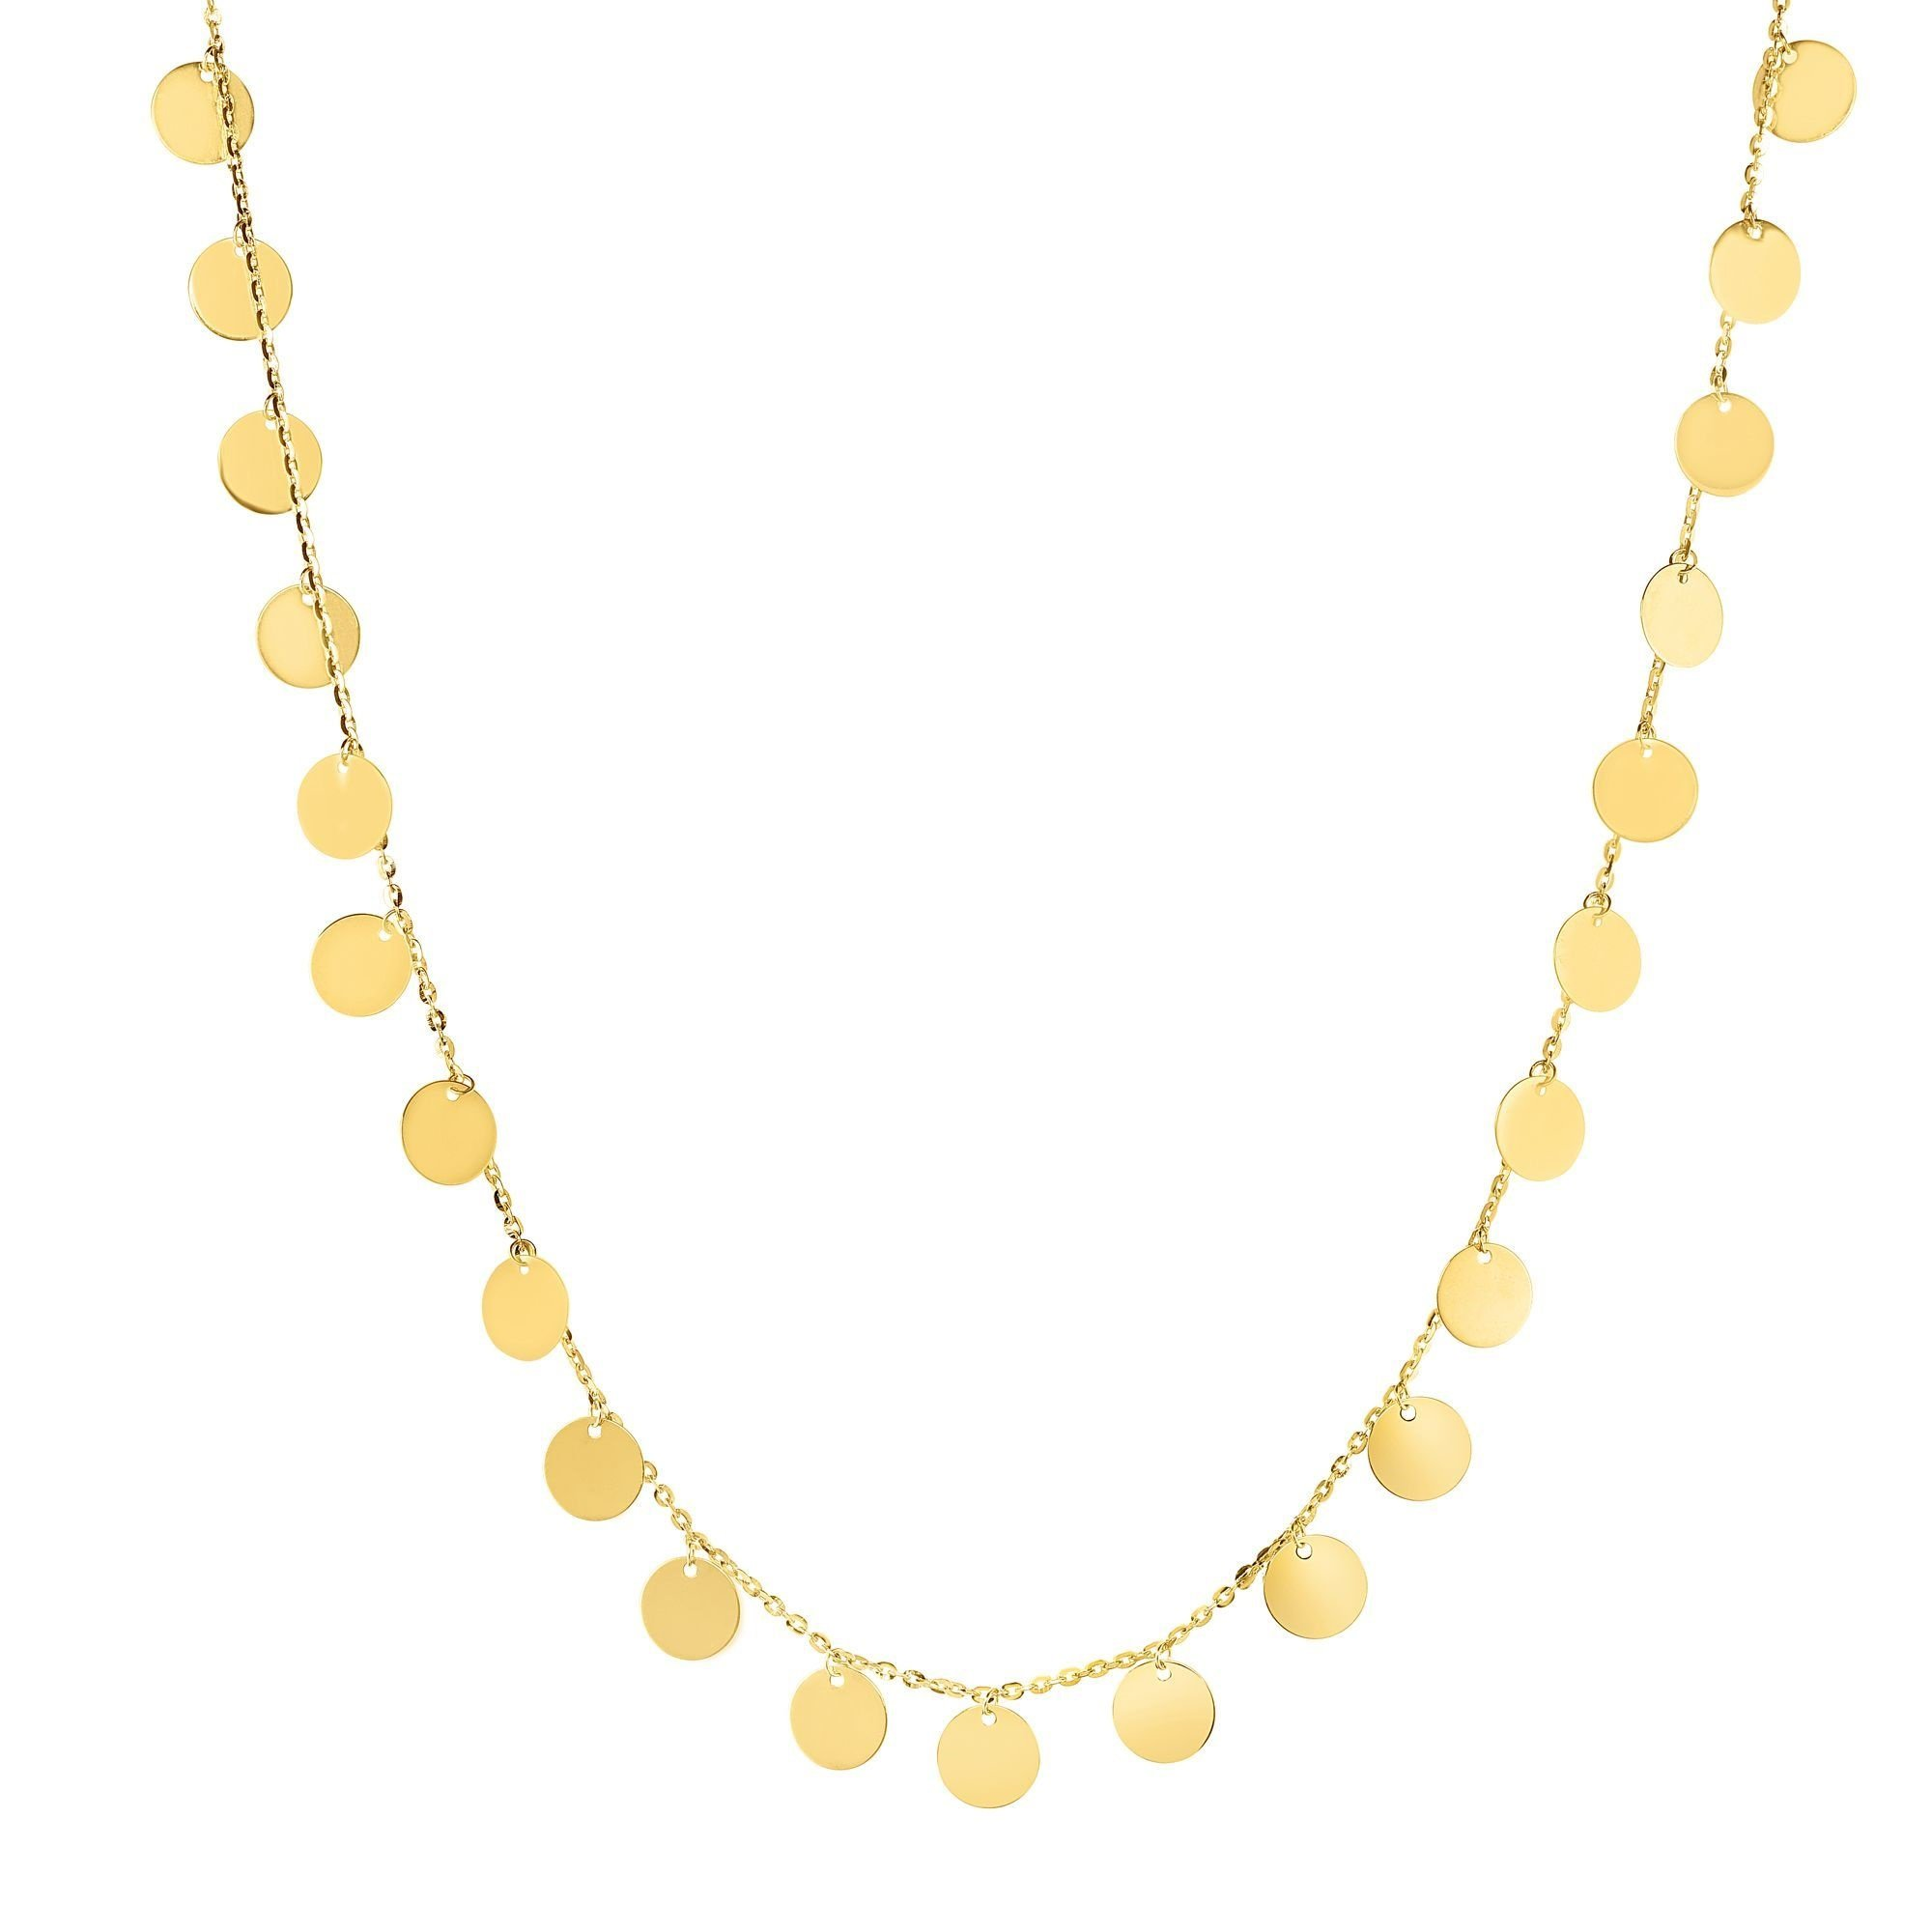 14kt Gold 16'' Yellow Finish 7mm Shiny+Diamond Cut Round Choker Necklace with Lobster Clasp